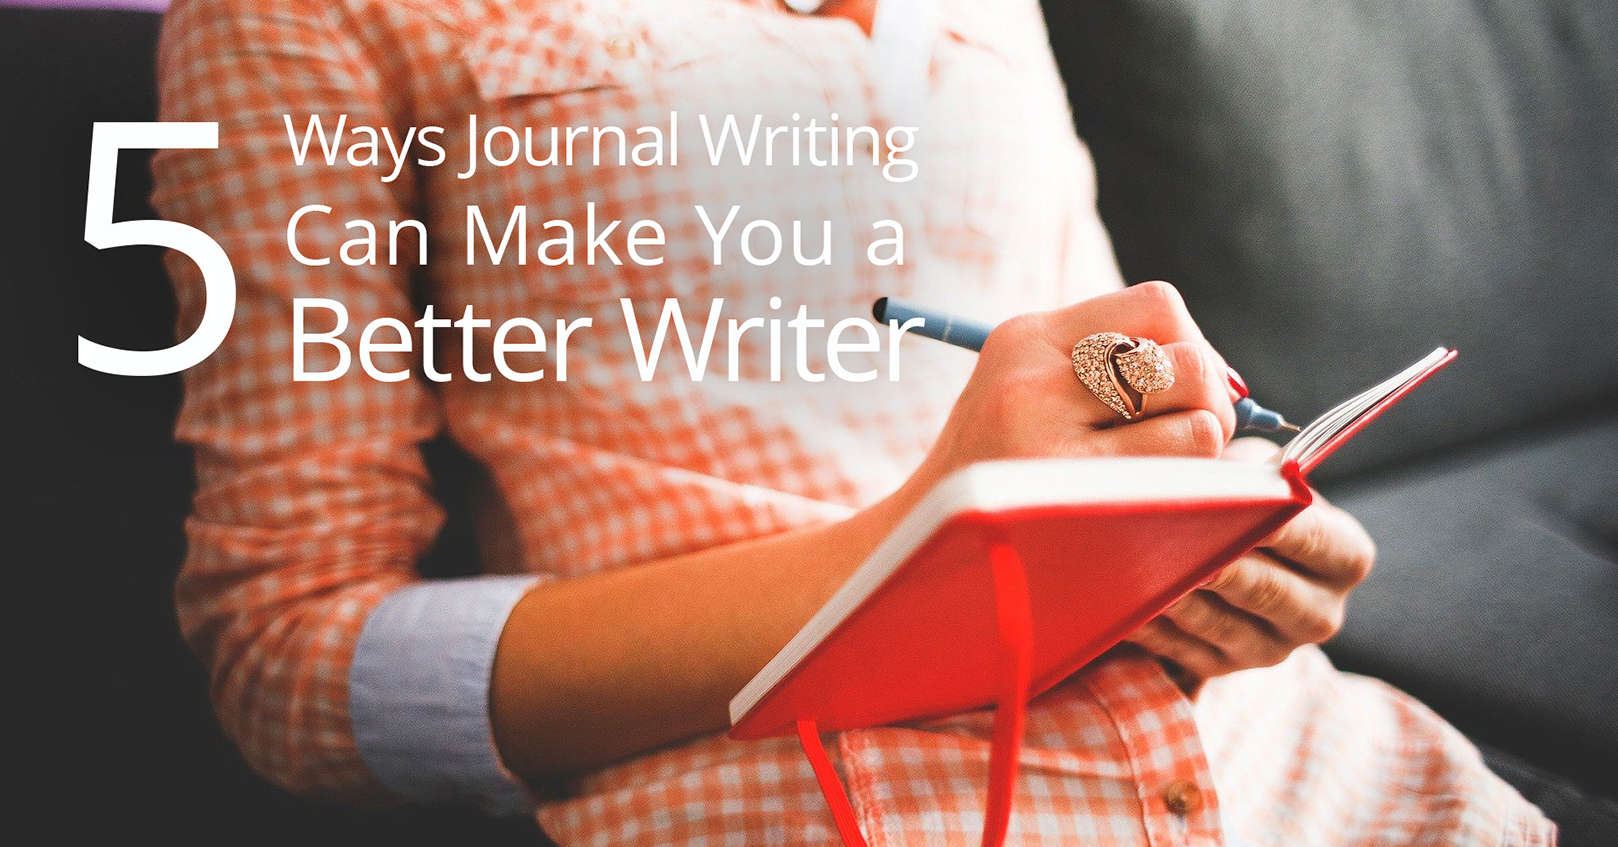 journal writing makes you a better writer